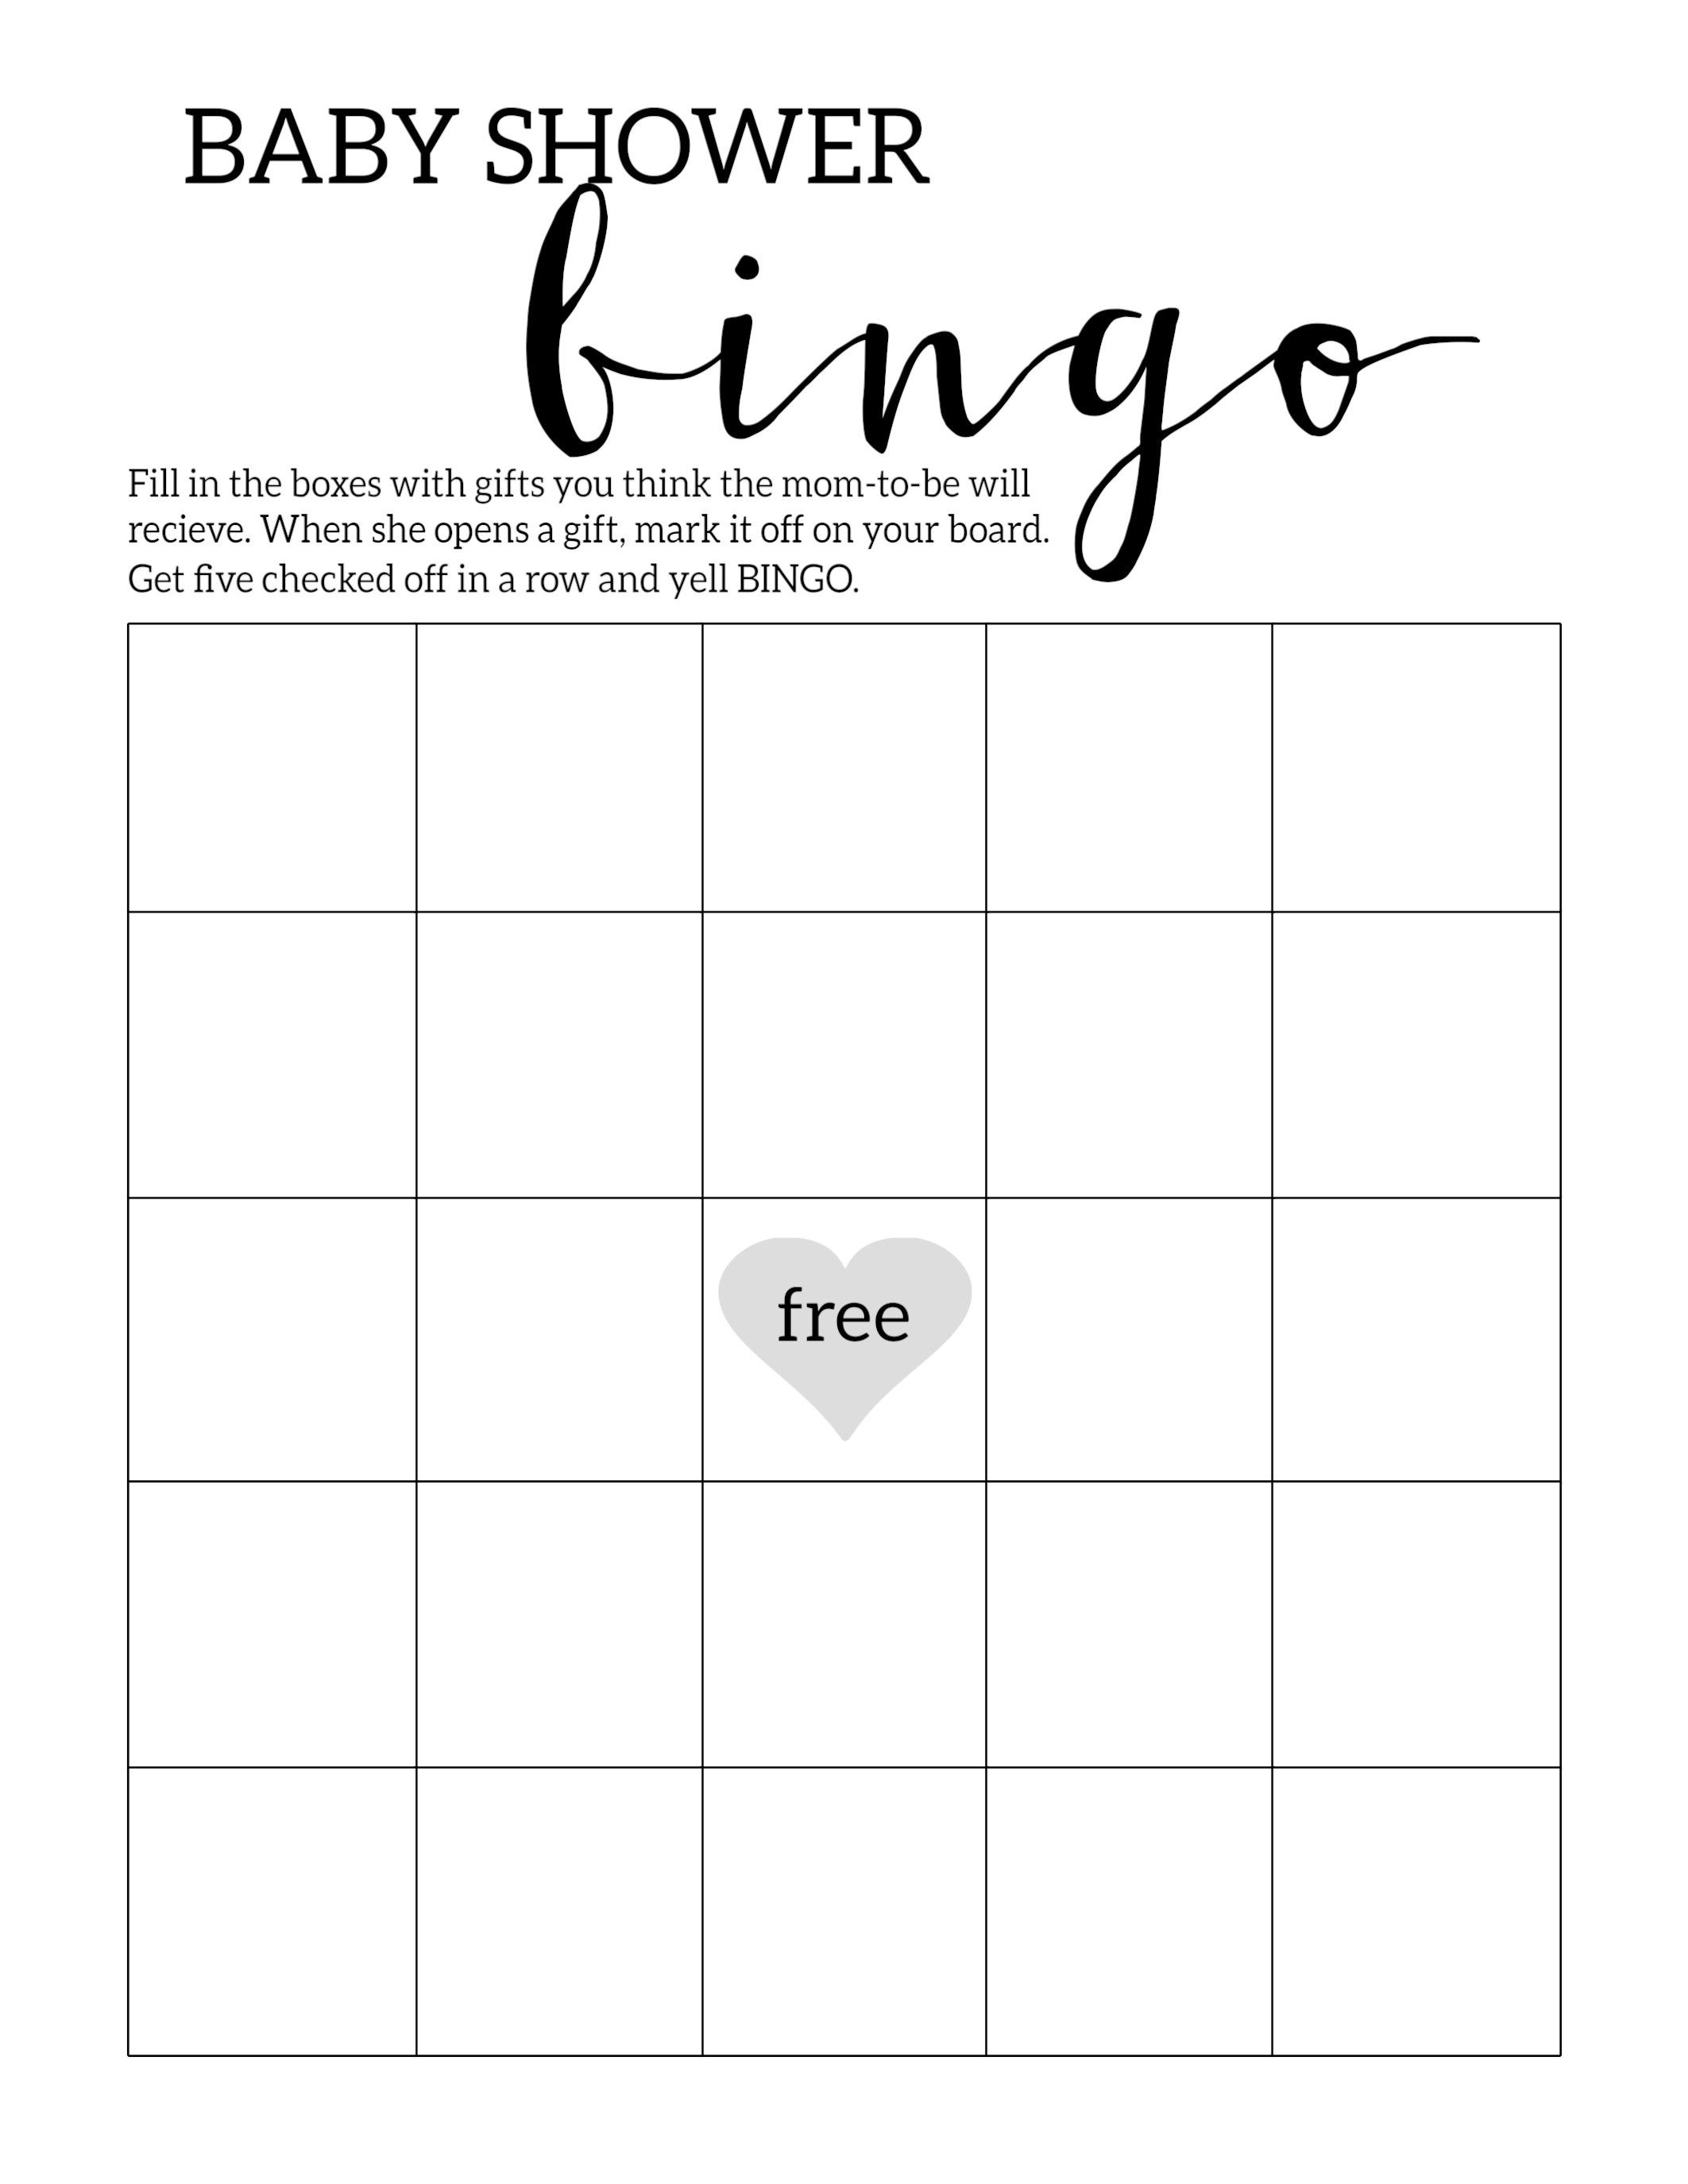 Baby Shower Bingo Printable Cards Template | Baby Shower | Baby - Baby Bingo Game Free Printable